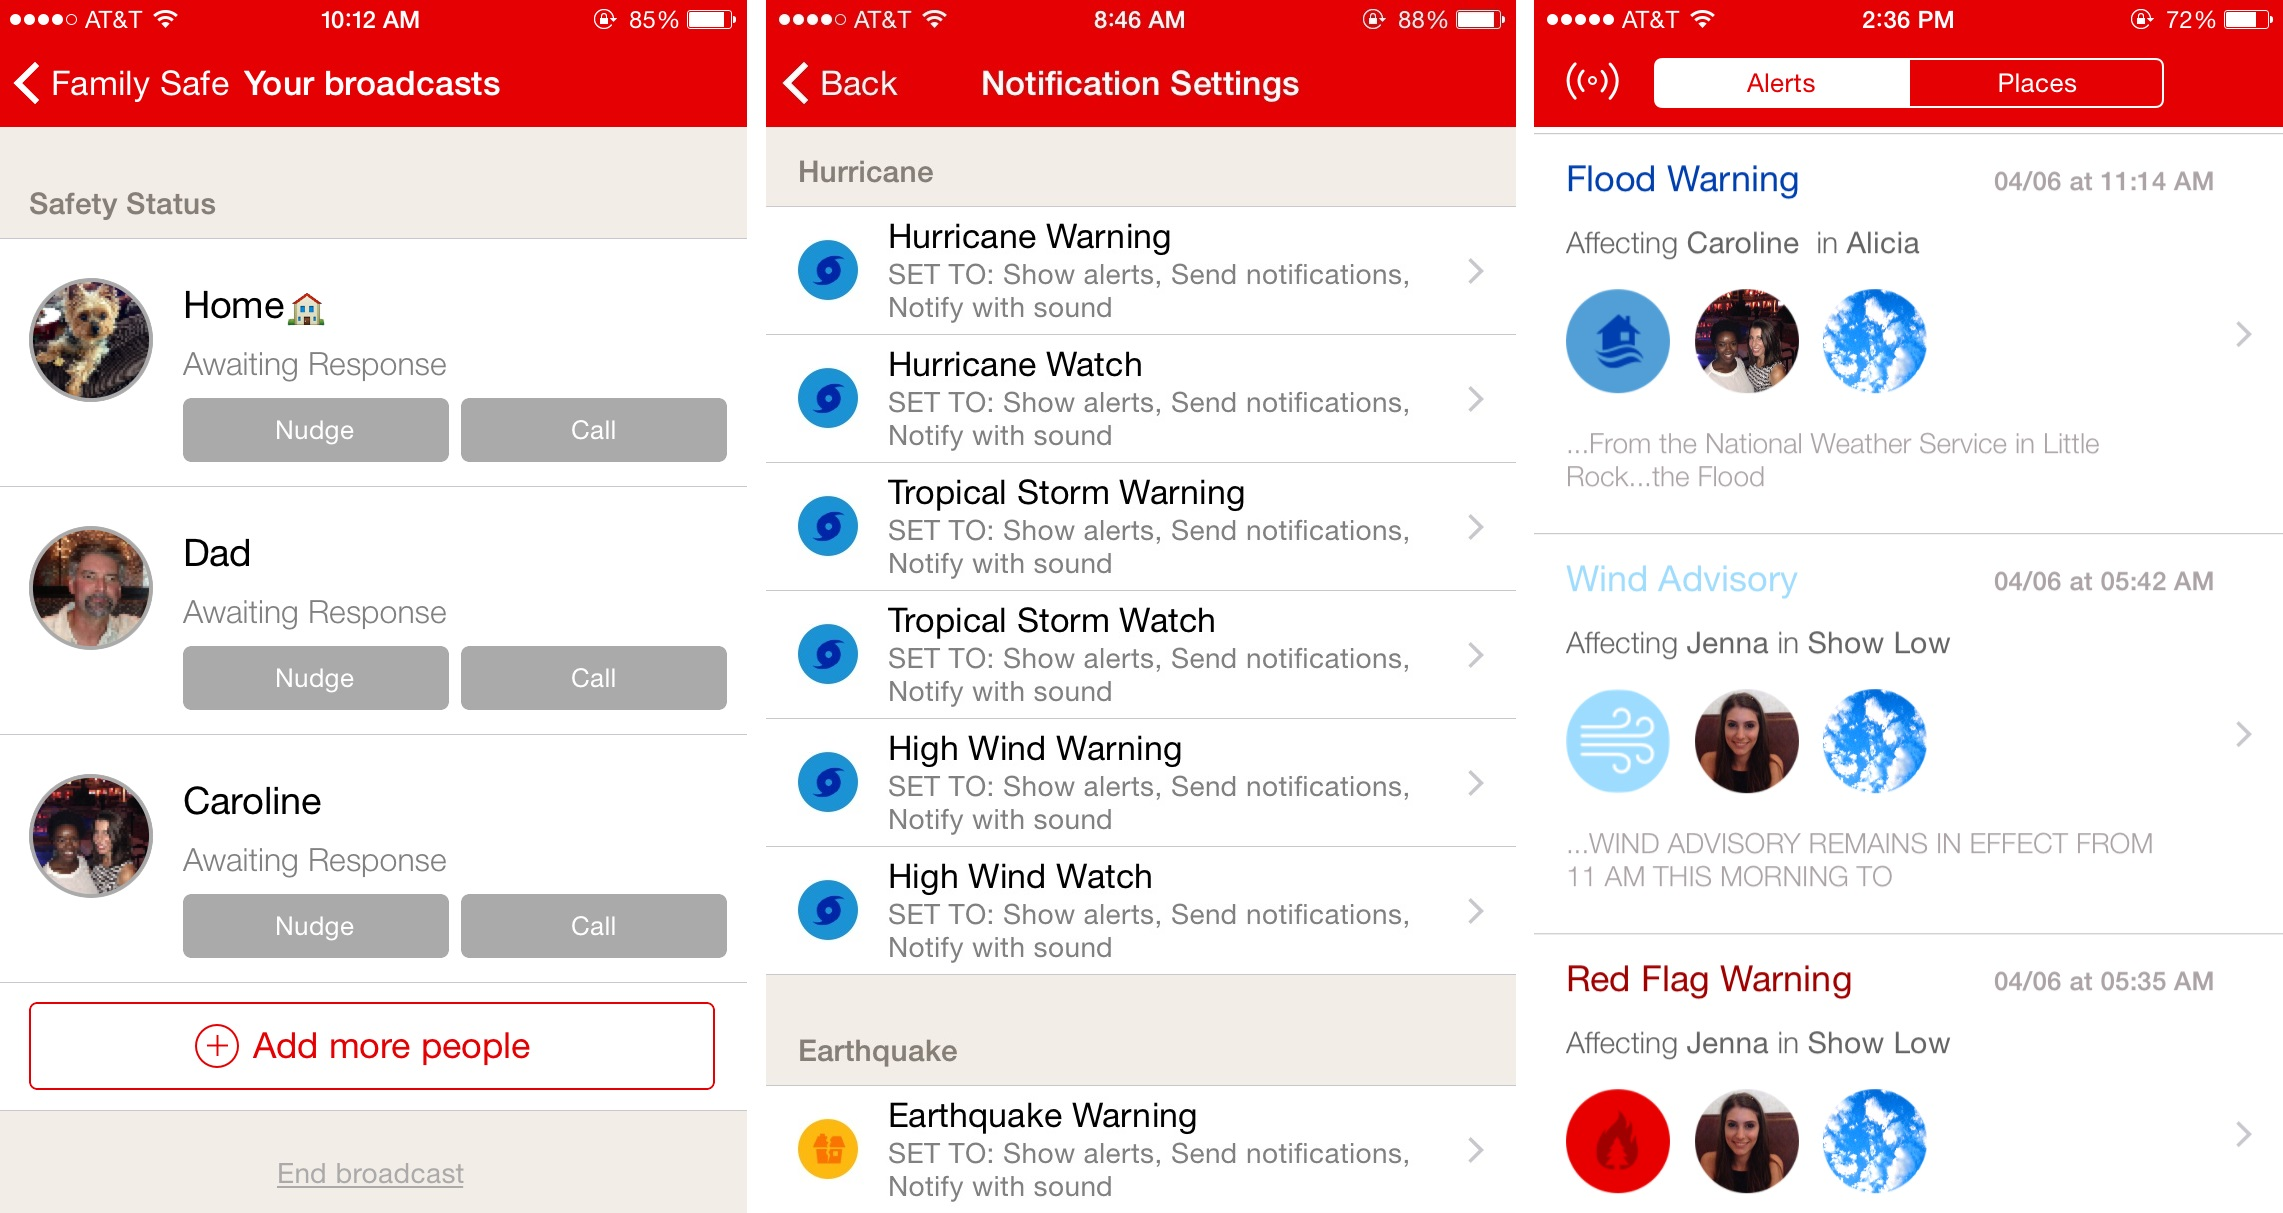 red cross emergency app screen shots_89382